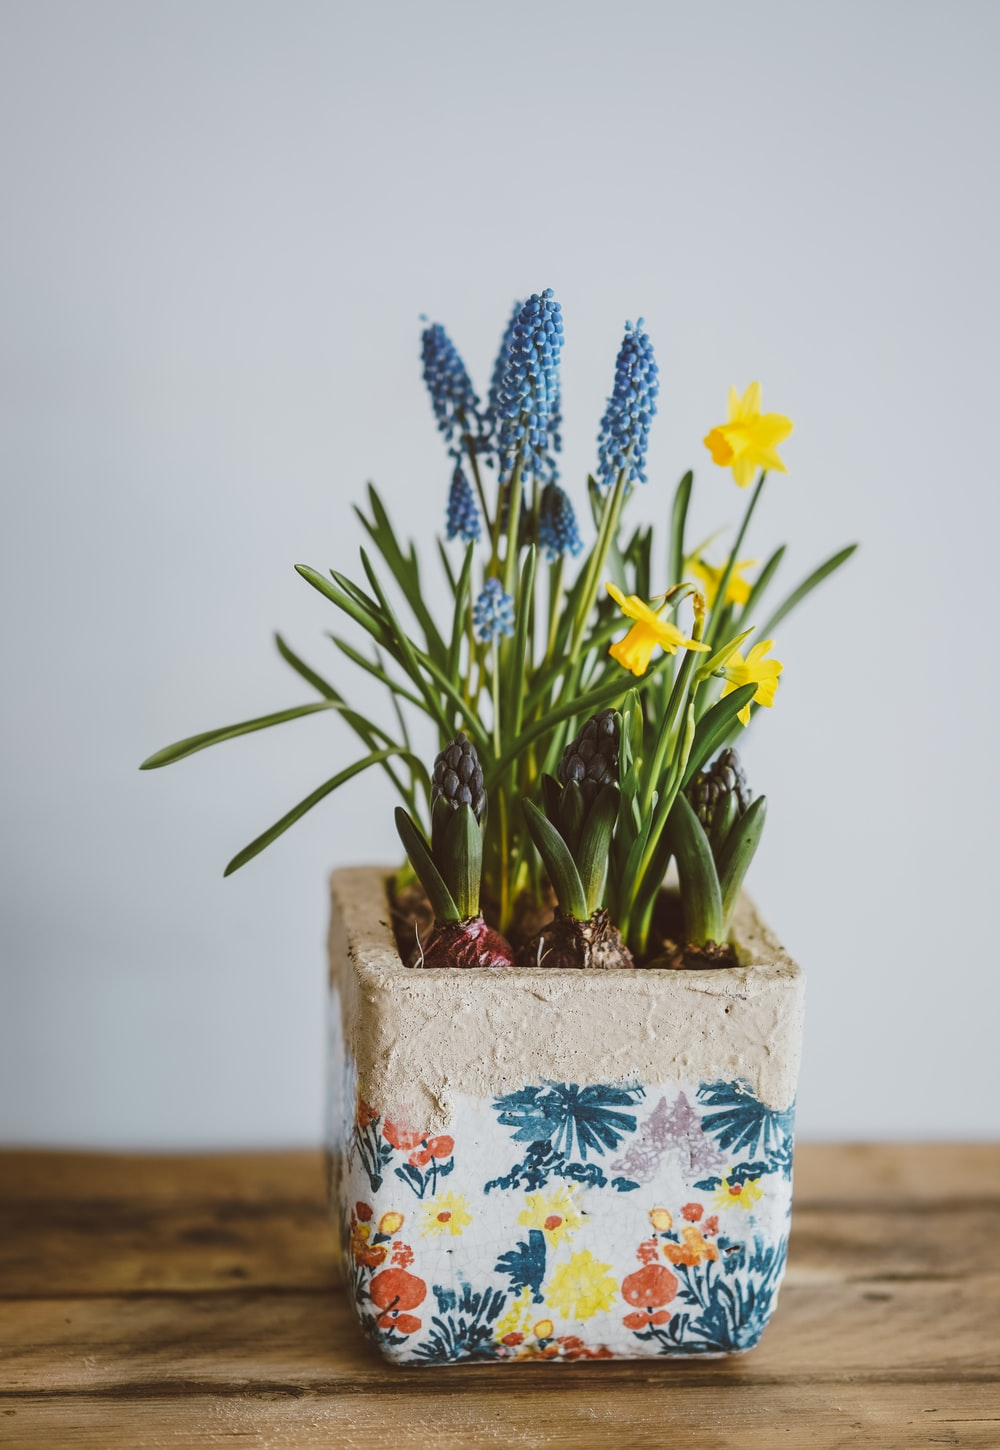 yellow and blue flowers on vase